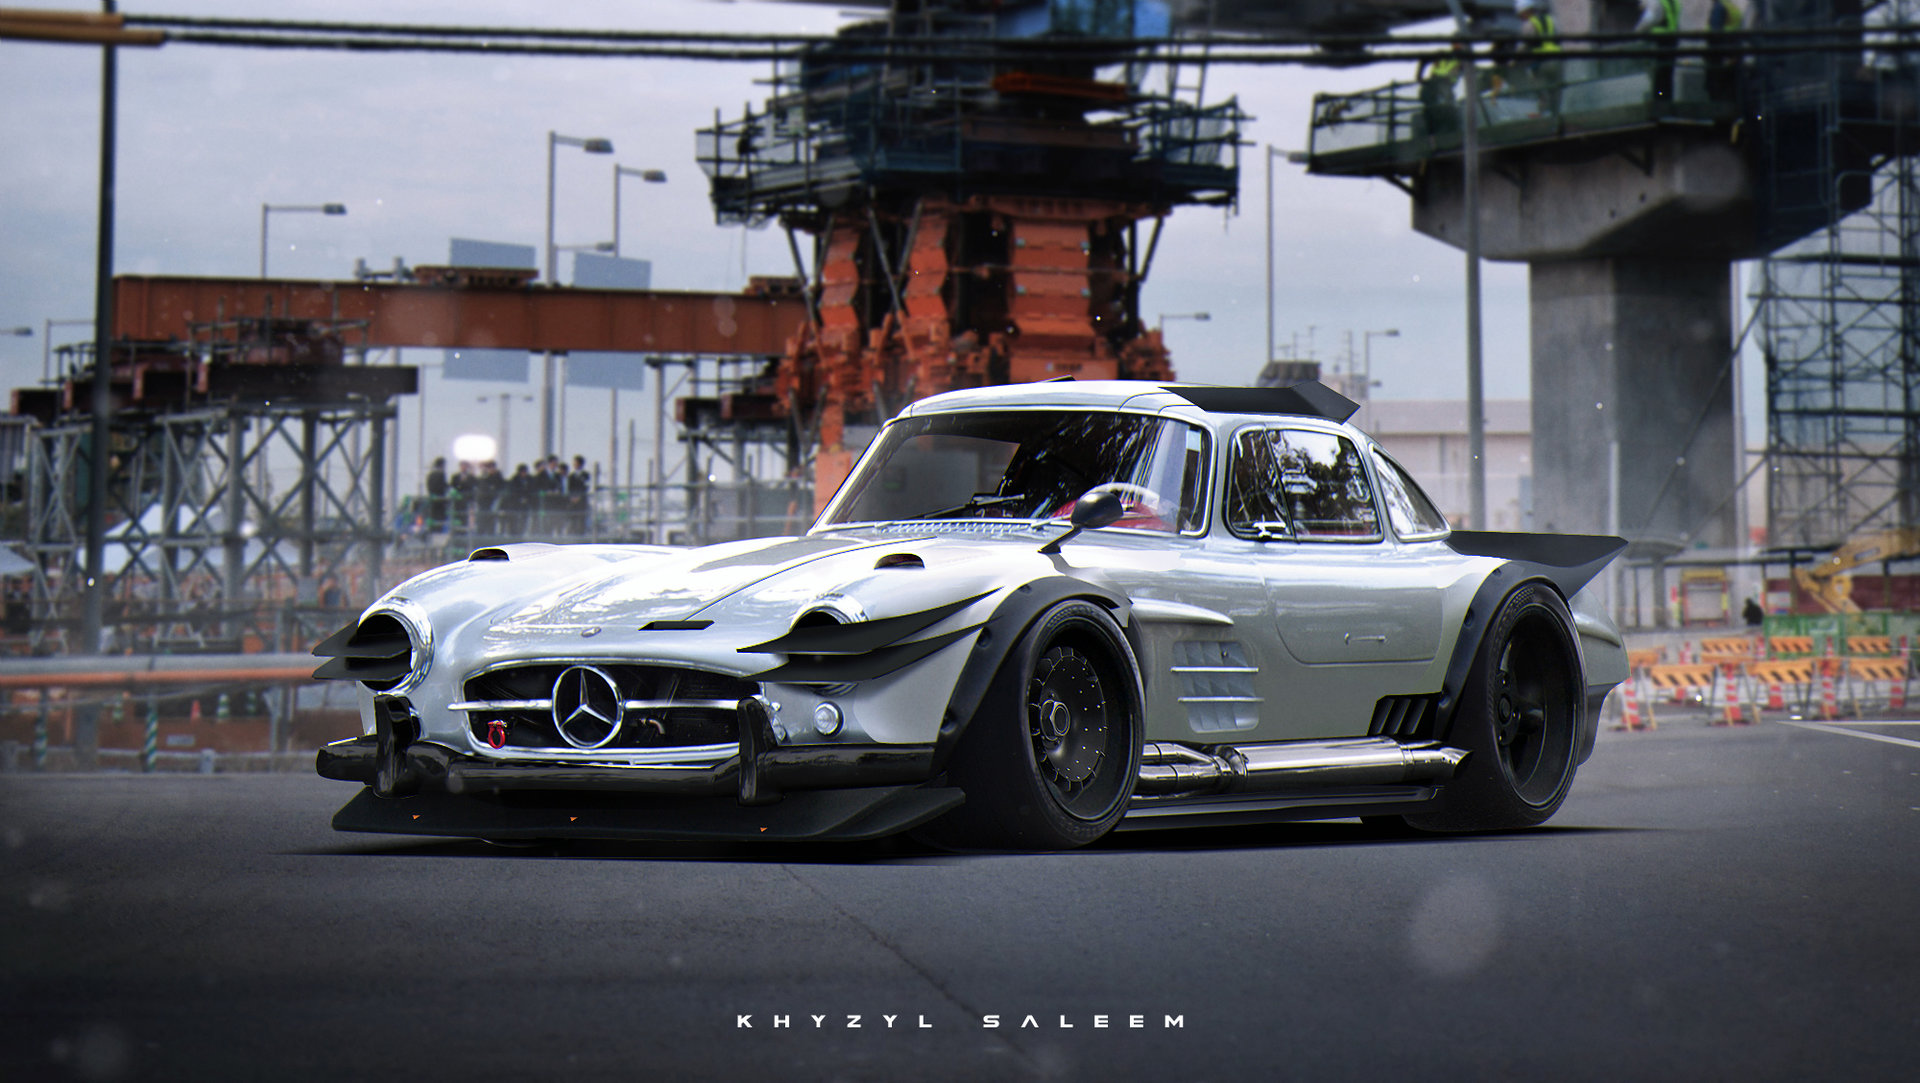 Khyzyl saleem 300sl copy